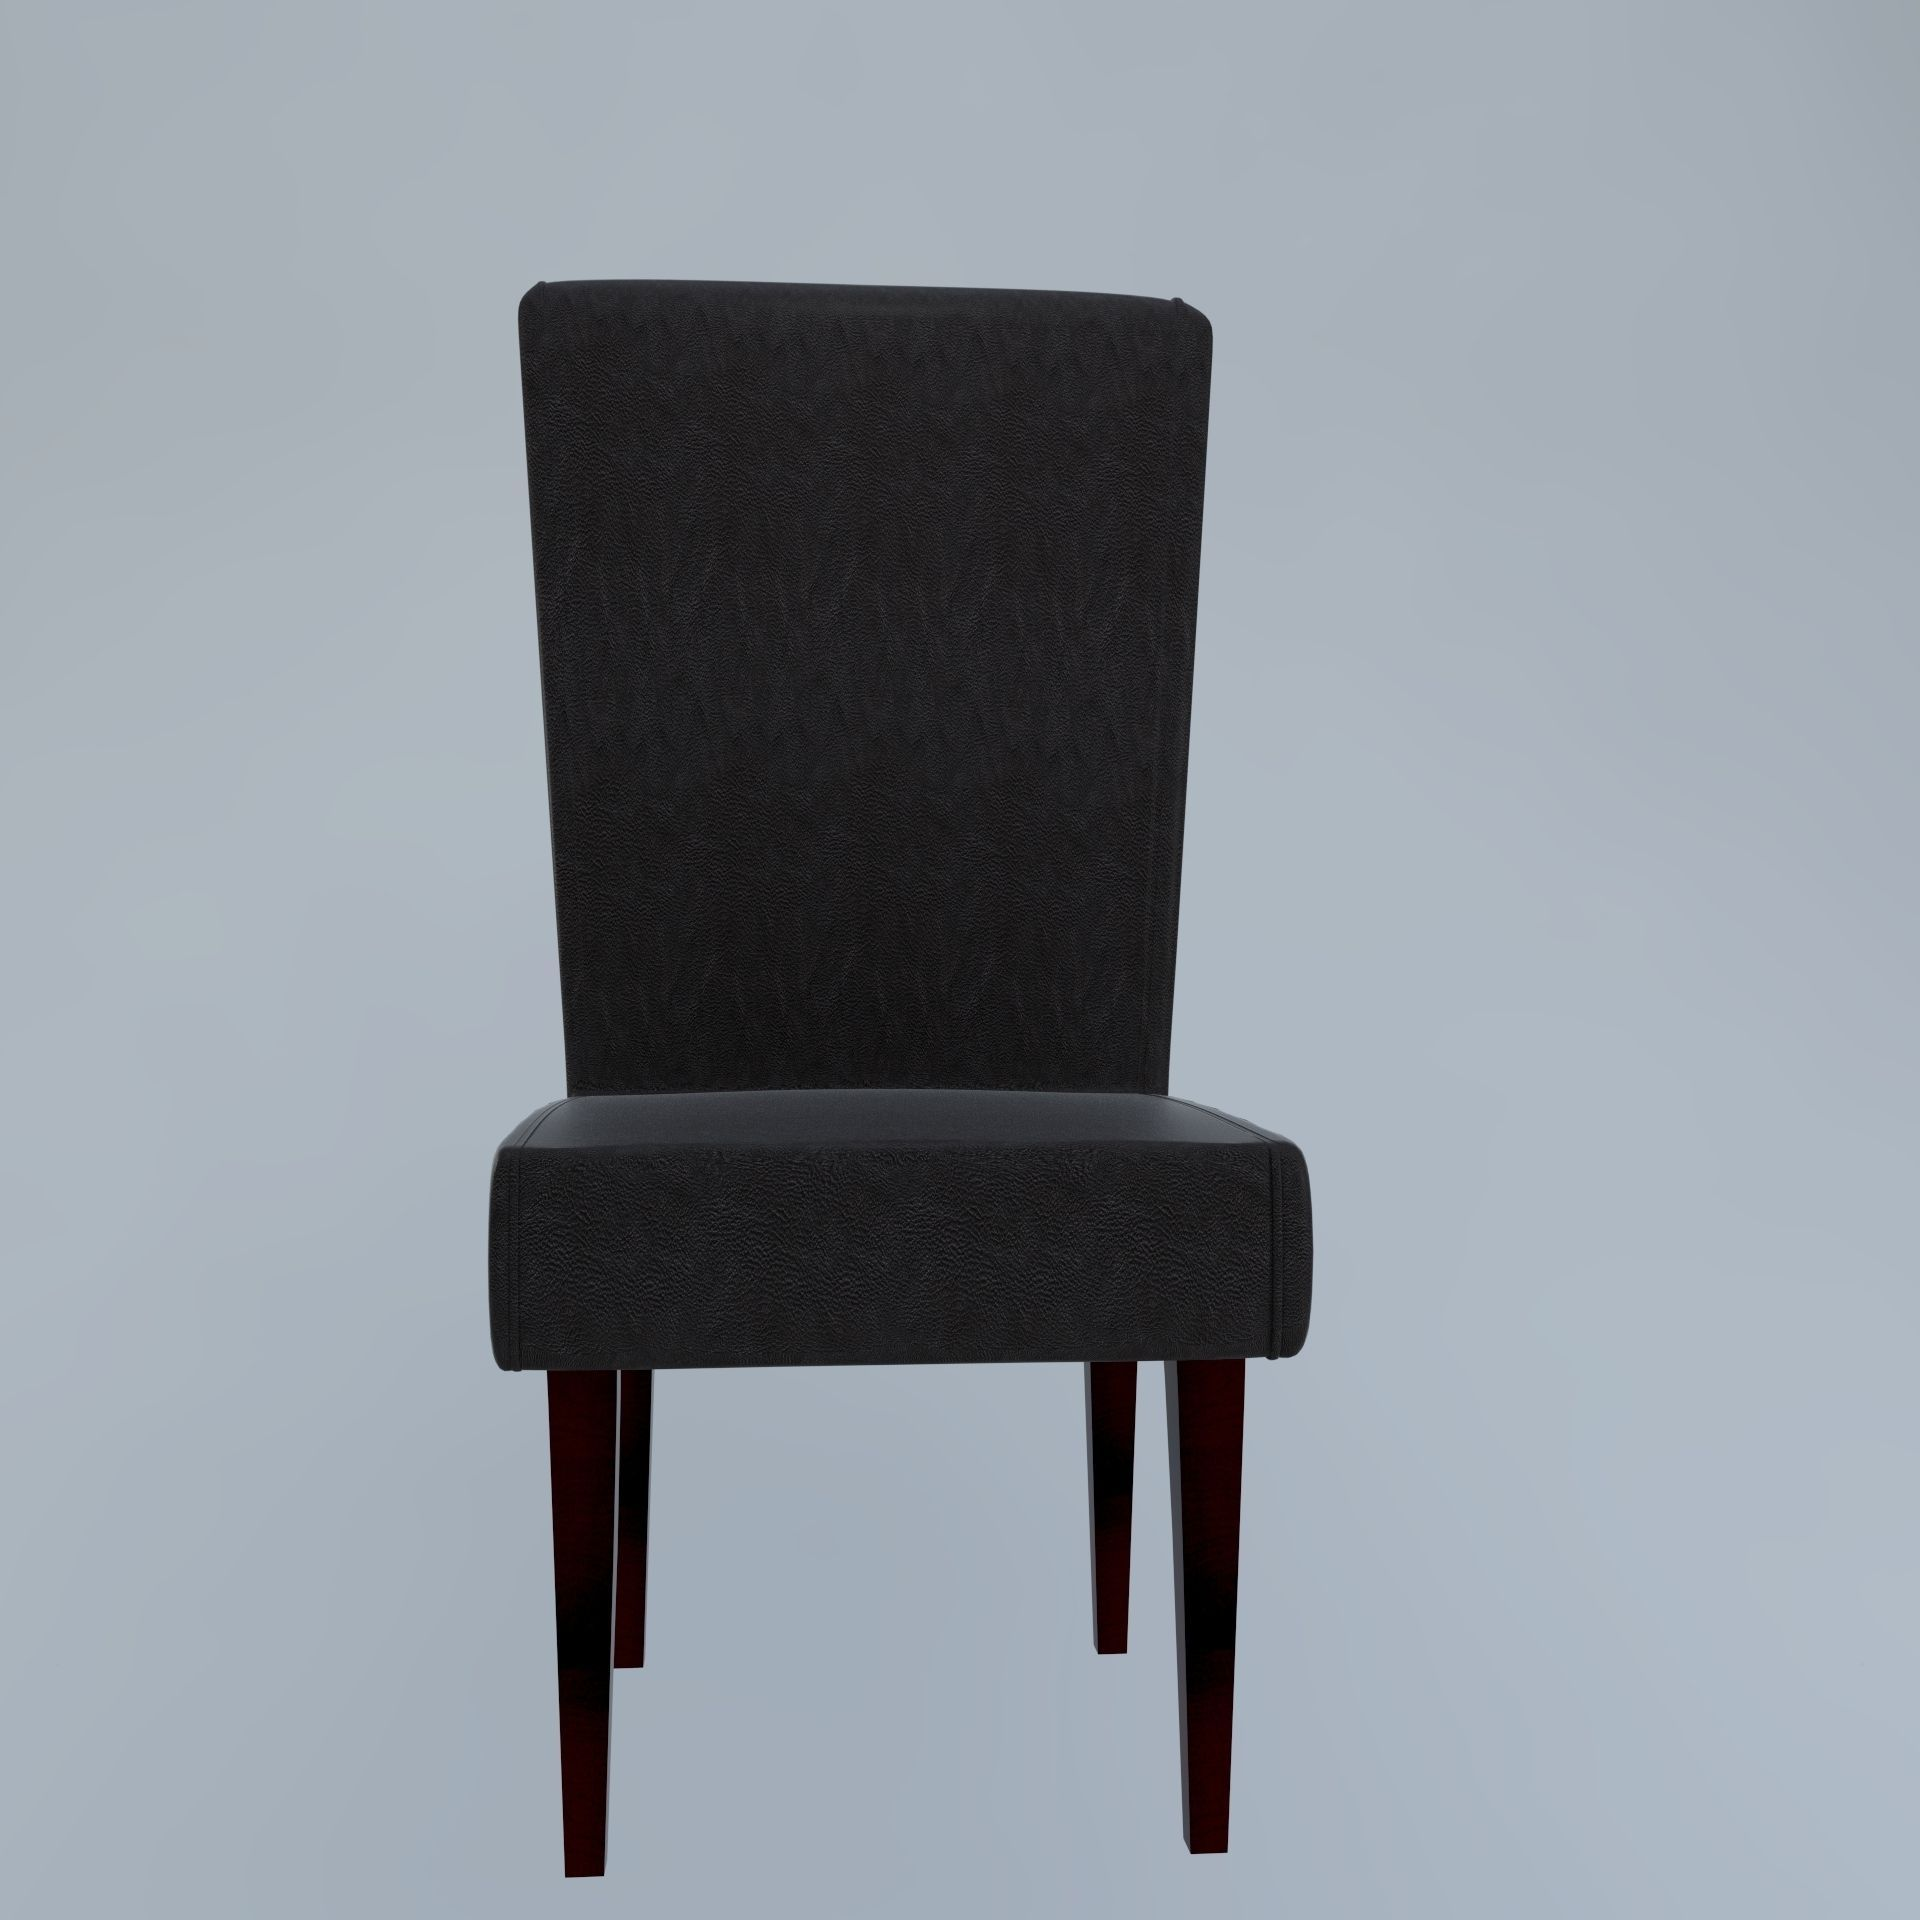 Chair free 3d model 3ds blend for New model chair design